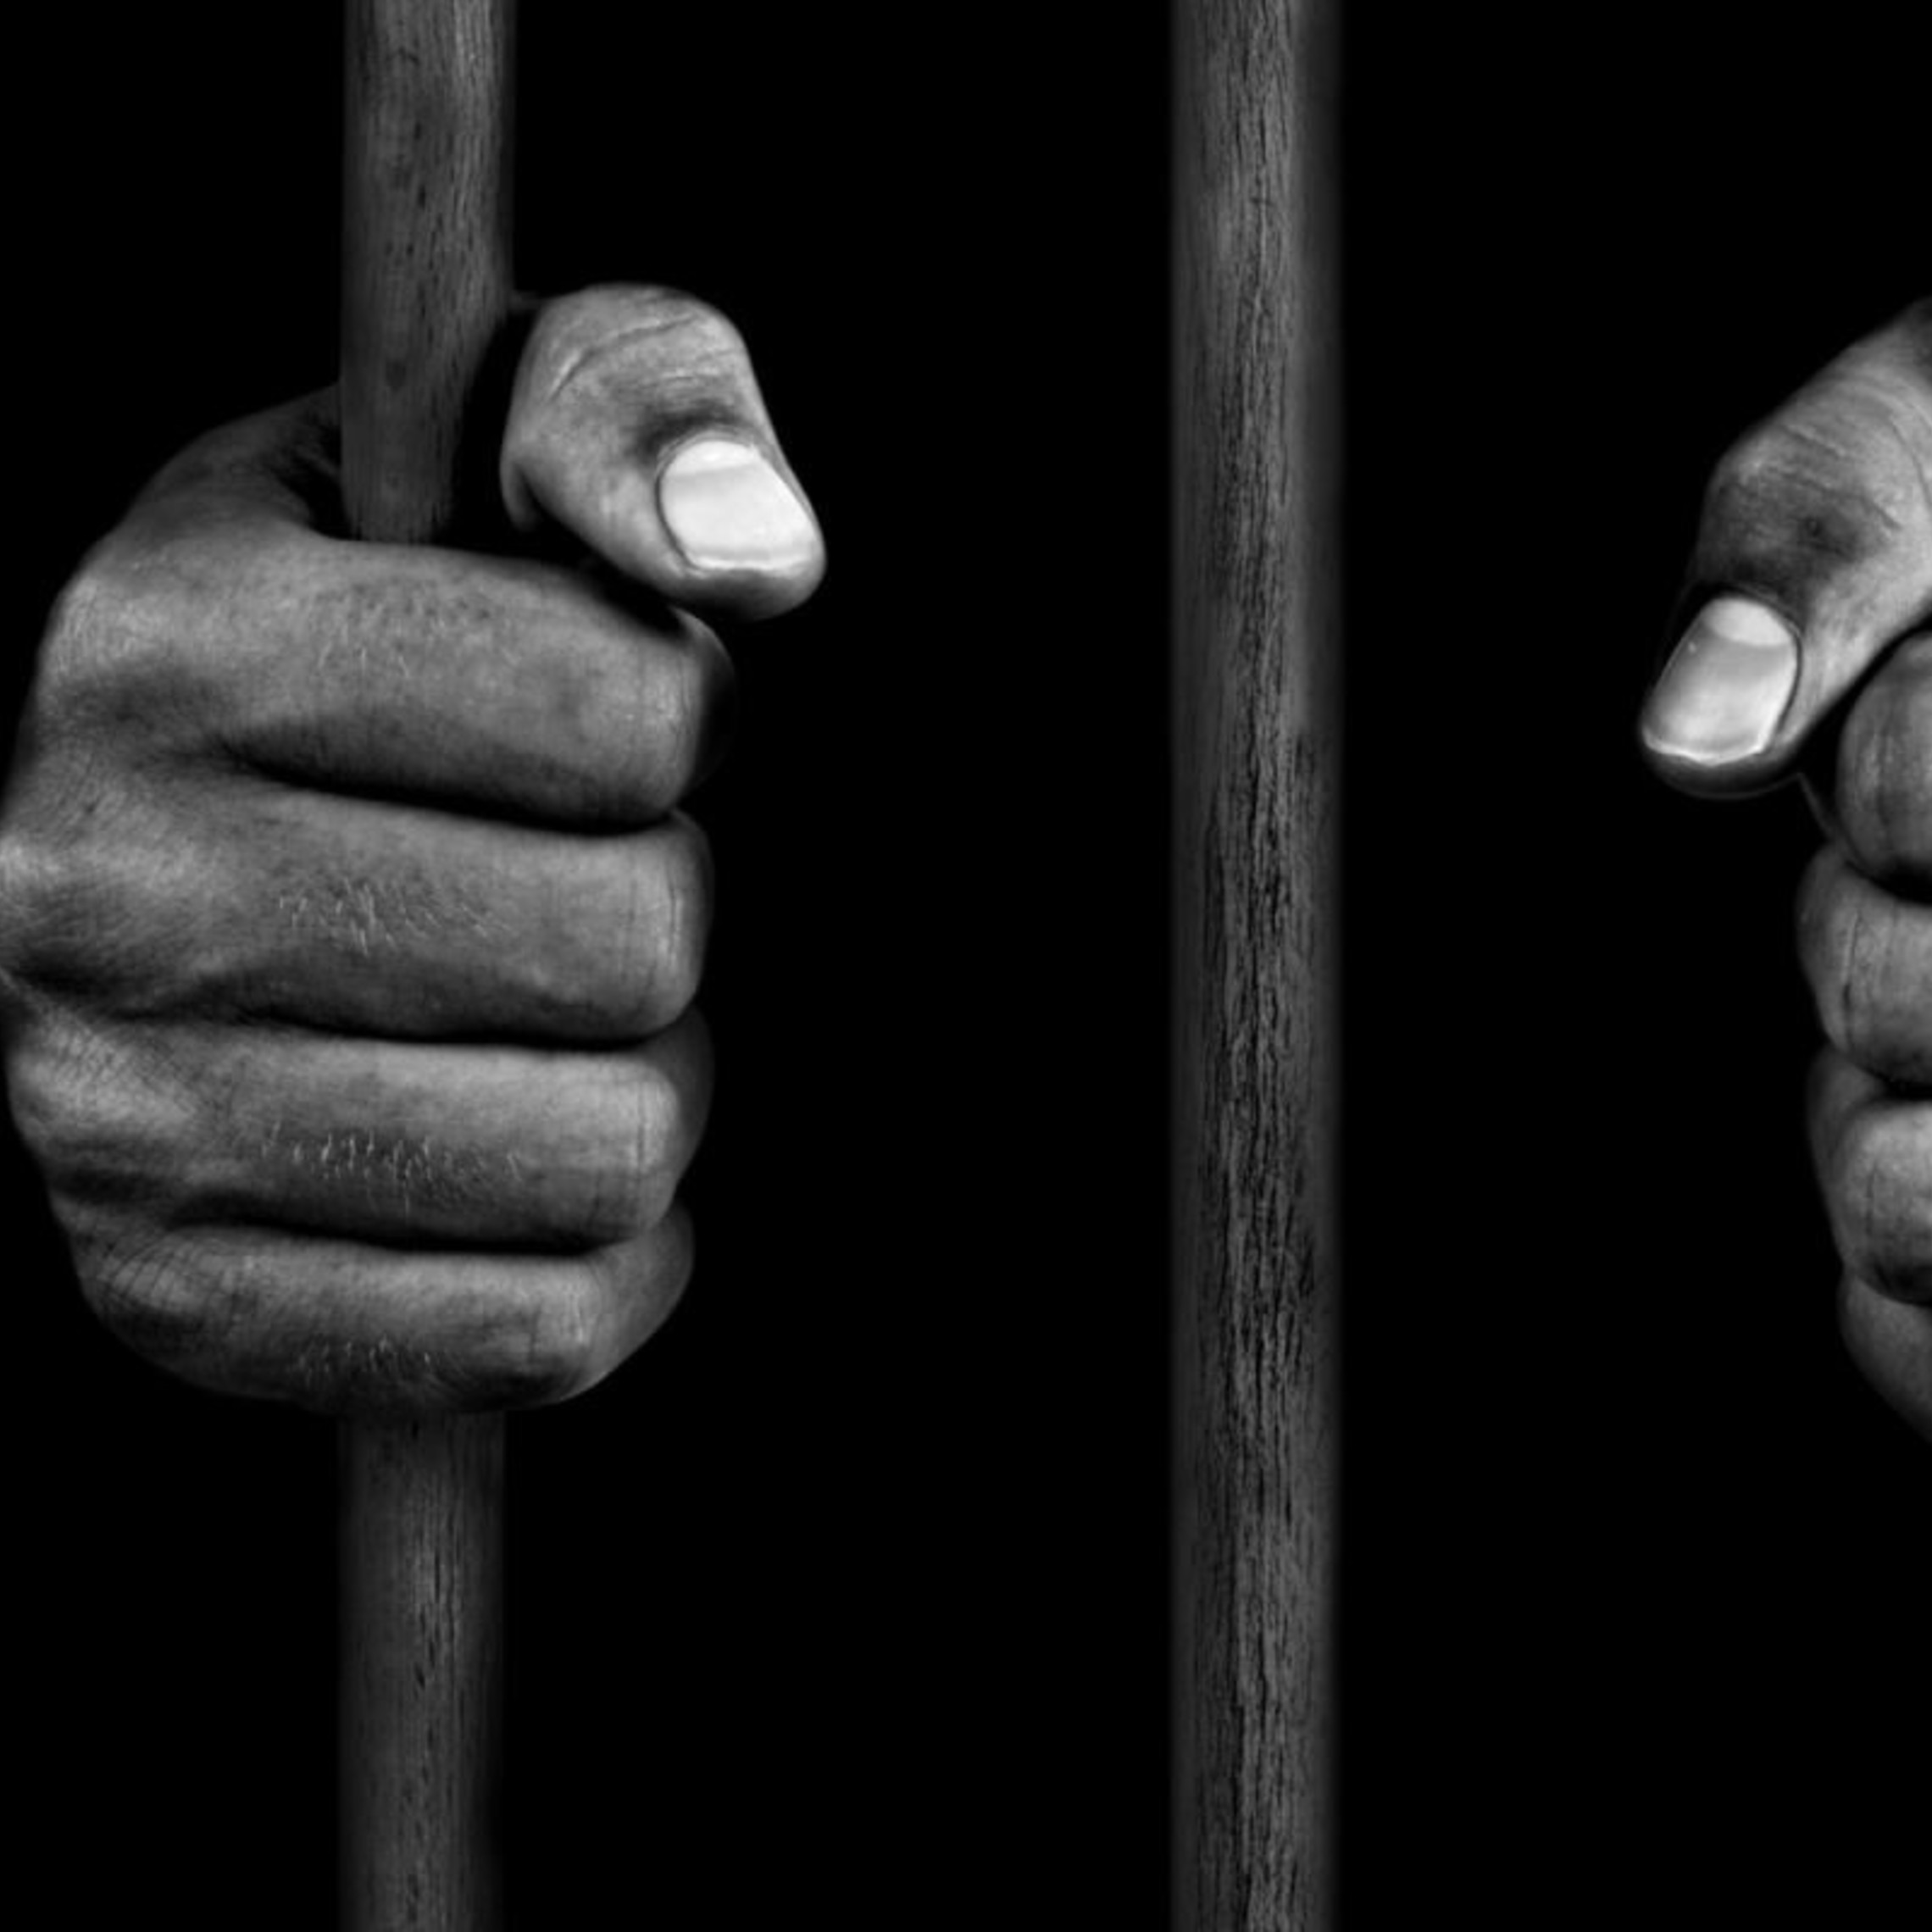 Death Penalty Hands On Bars